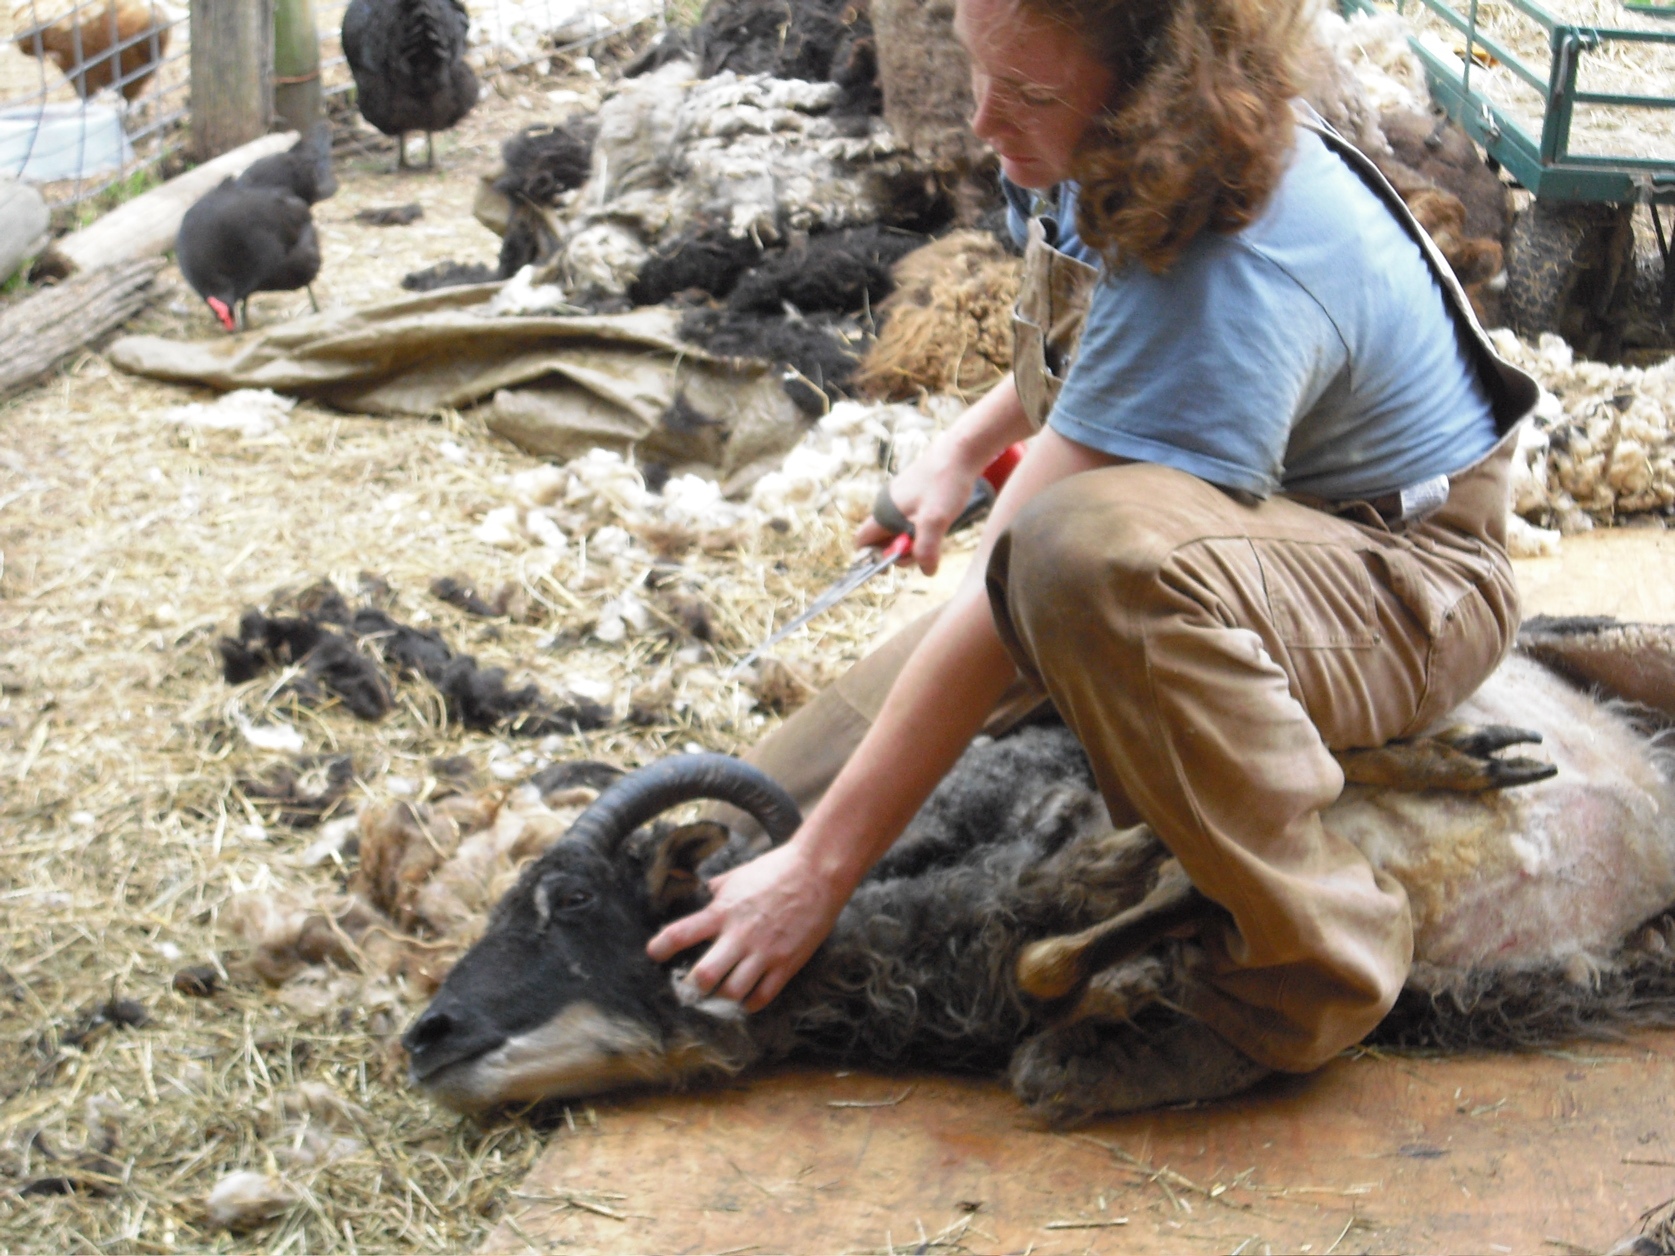 Tamarack Farm Wool - Shearing